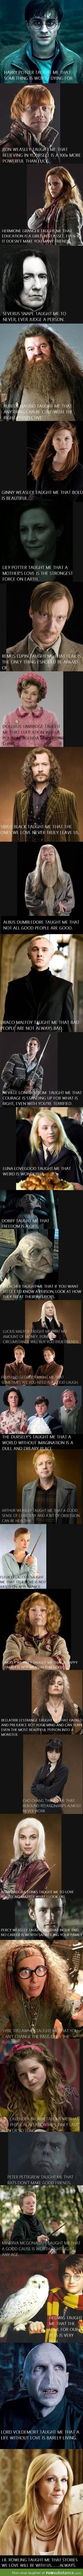 What Harry Potter taught me and why harry potter over stupid twilight any day